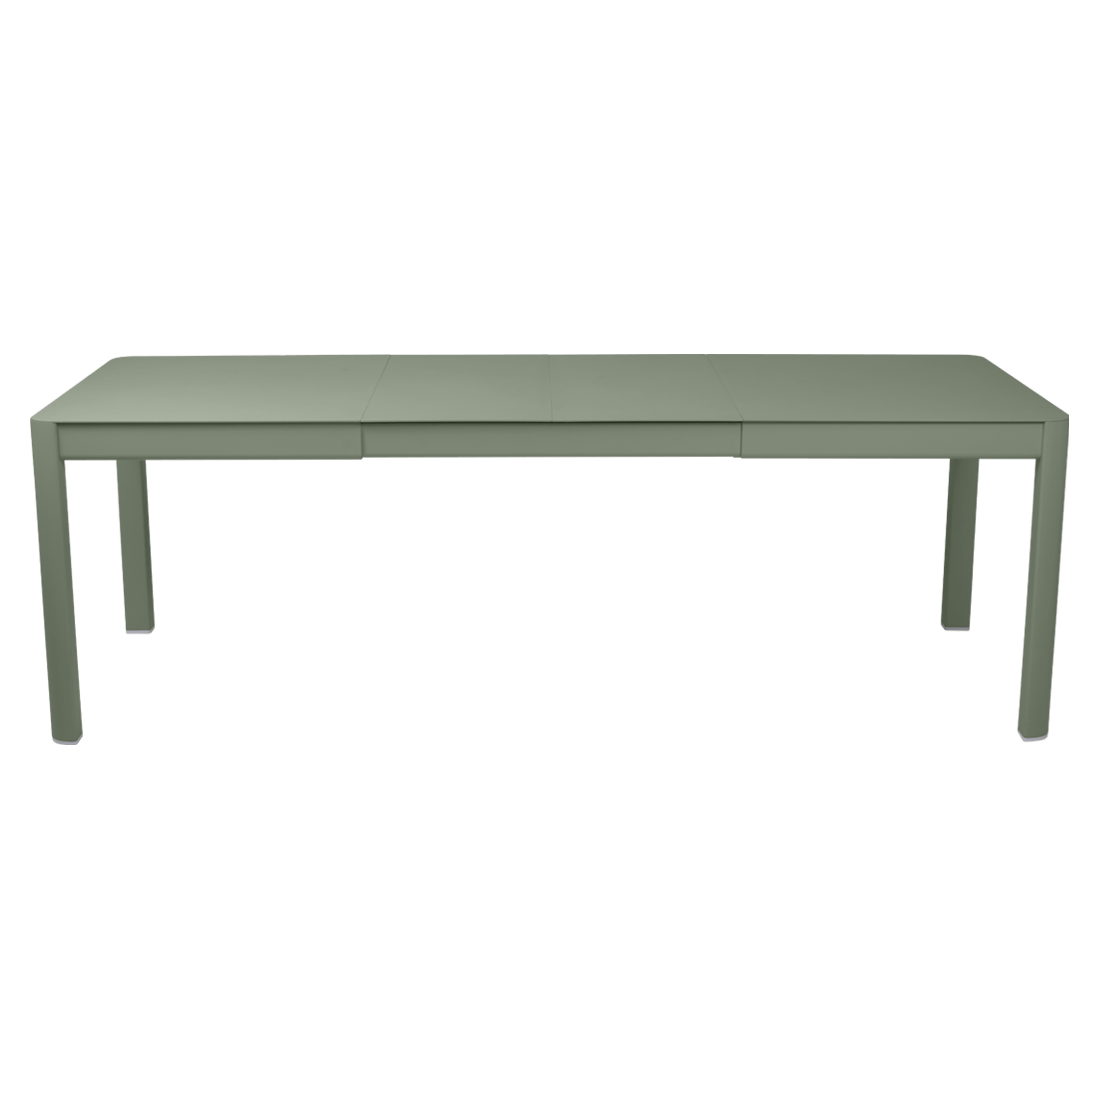 Table Jardin Table Ribambelle 2 Allonges Table De Jardin Mobilier De Jardin